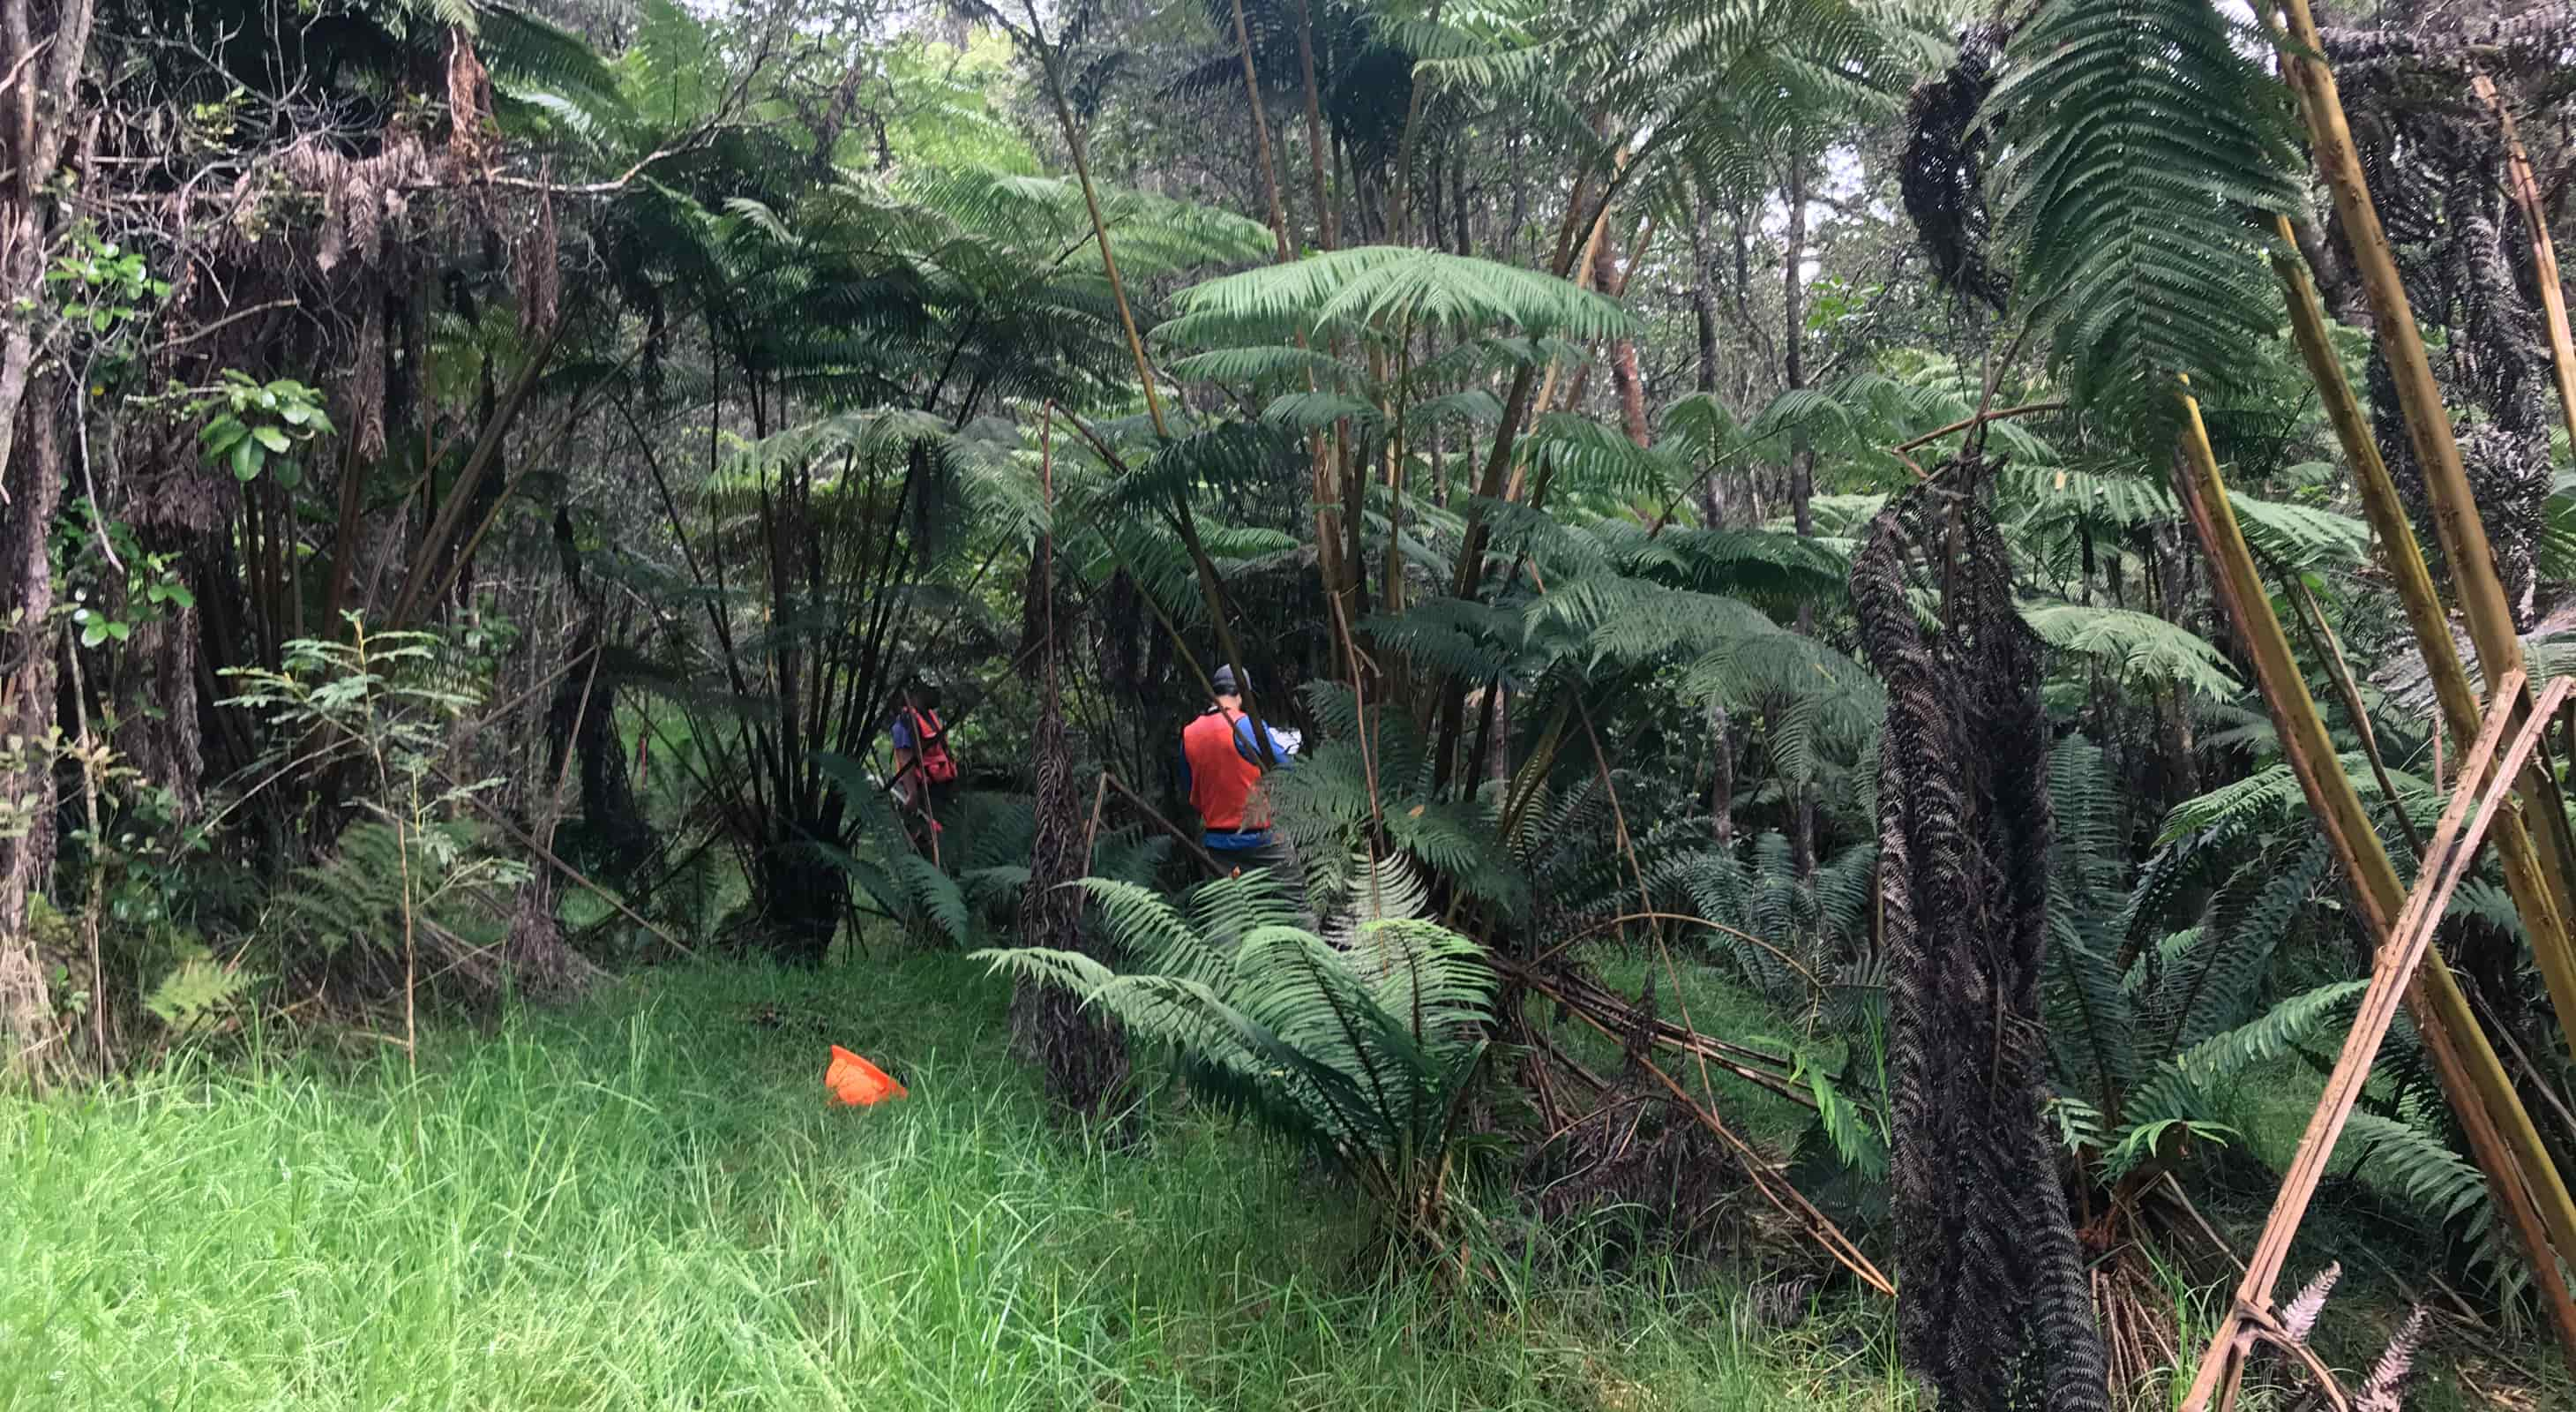 Participants observe and collect data on the ground in puʻumakaʻala